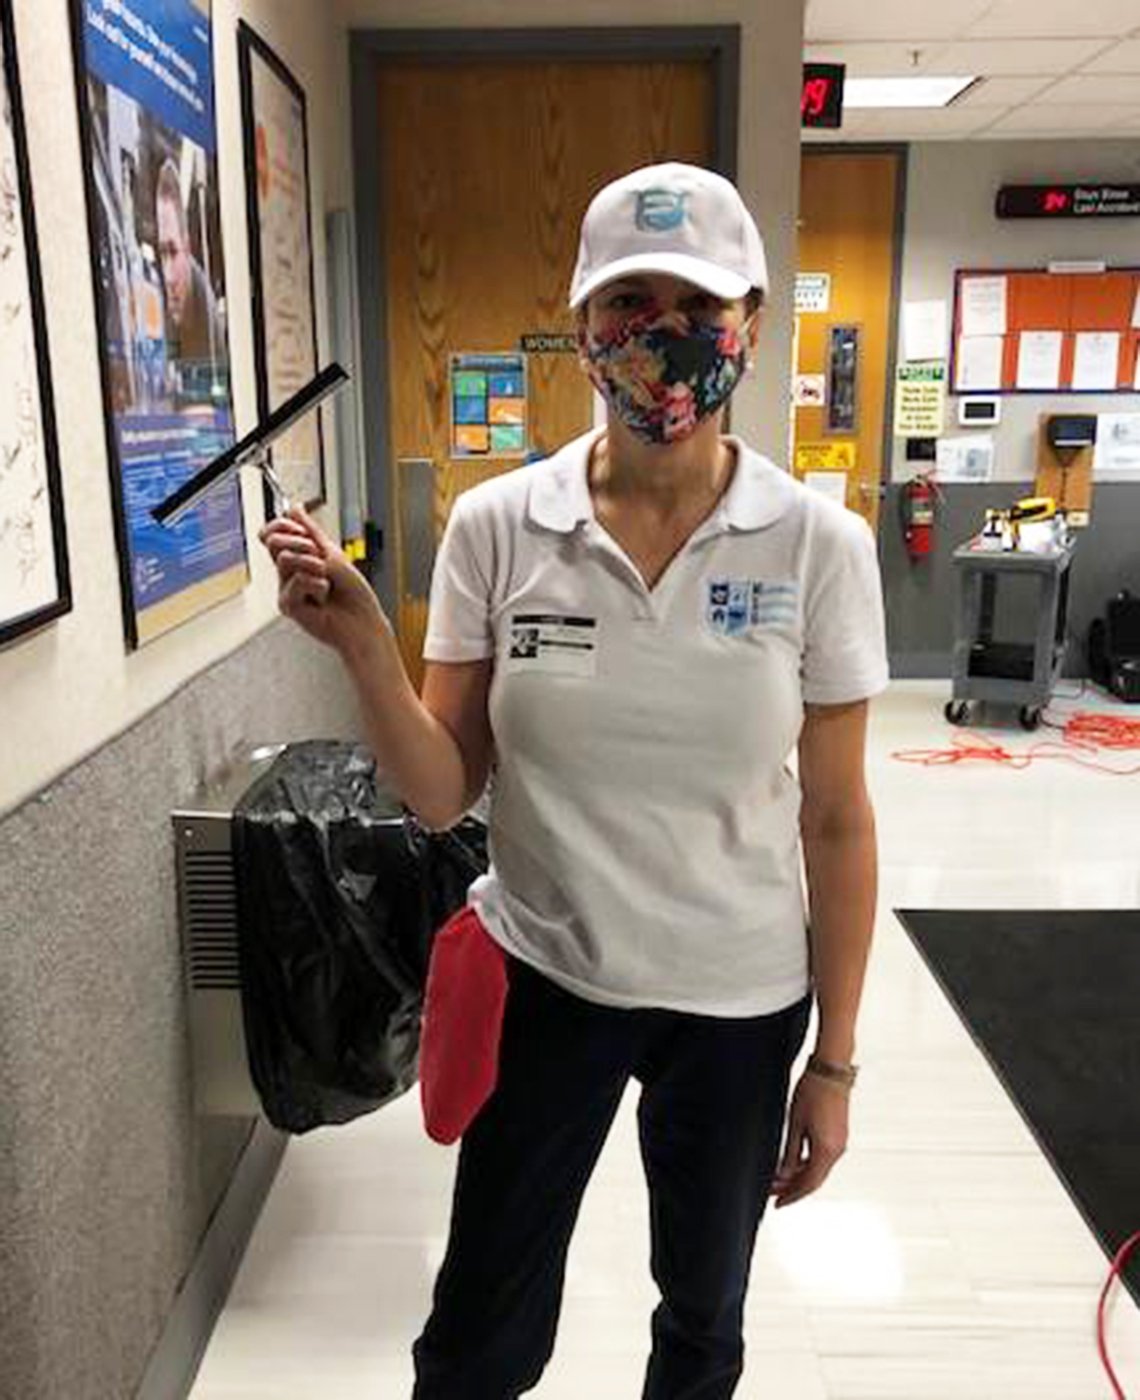 elaine brauch holds a squeegee at work